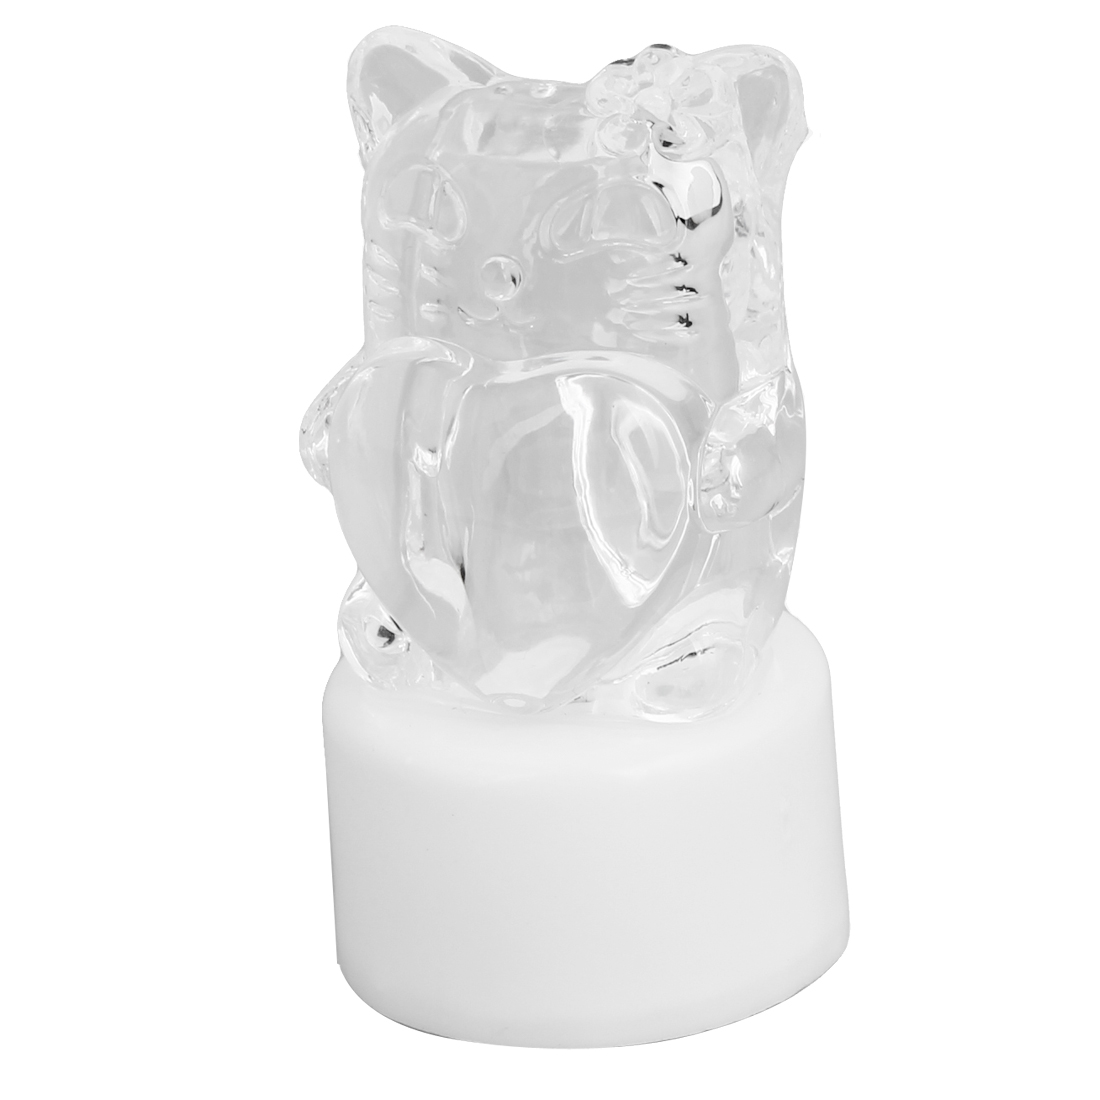 Cat Shaped Magic Colorful Changeable Plastic Crystal Flash LED Lamp White Clear